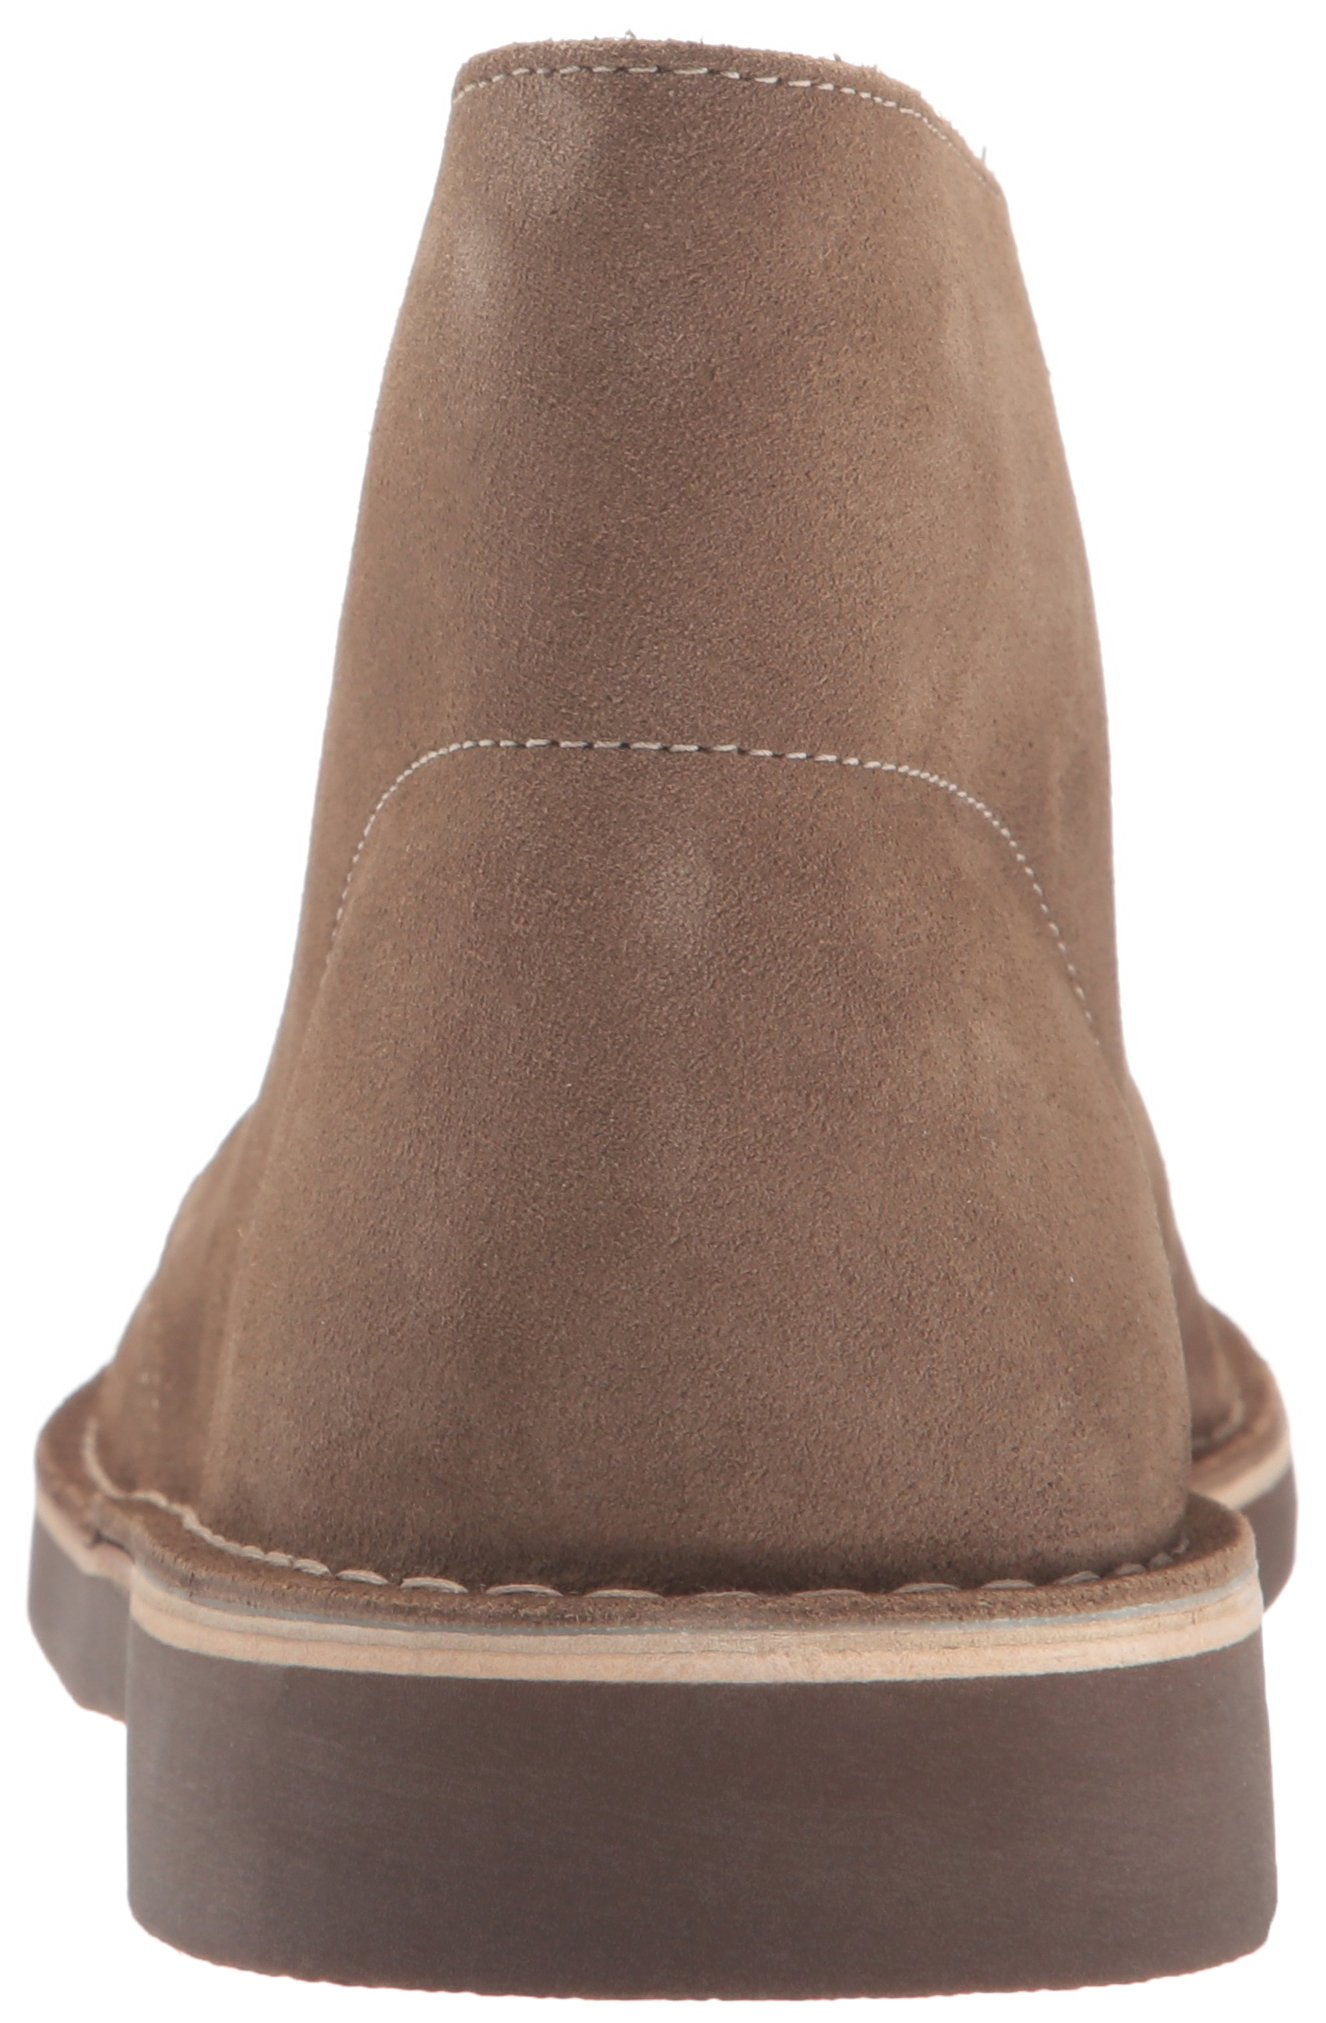 Clarks Men's Bushacre 2 Chukka Boot,Sand Sable,10 M US by CLARKS (Image #2)